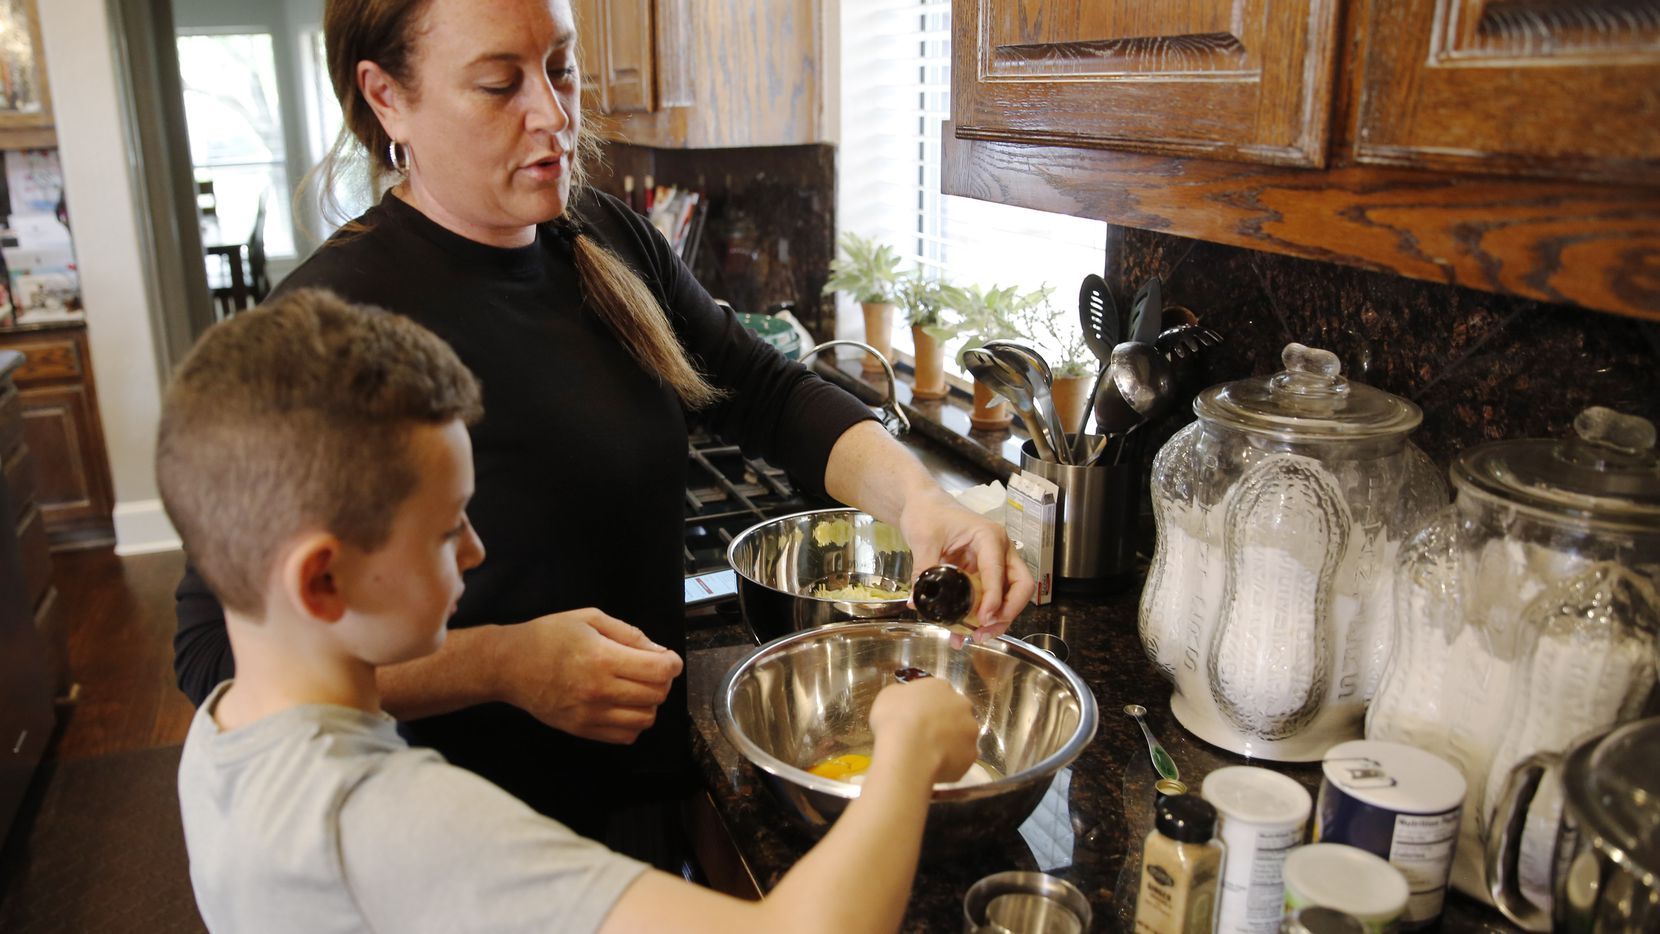 """Jamie Heit used a zucchini muffin-making session at her Frisco home as a chance to work with her 10-year-old son, Brandon, on measurements and fractions. She said last weekend was when her family """"pulled back the reins and began wondering what would happen with daily life."""""""